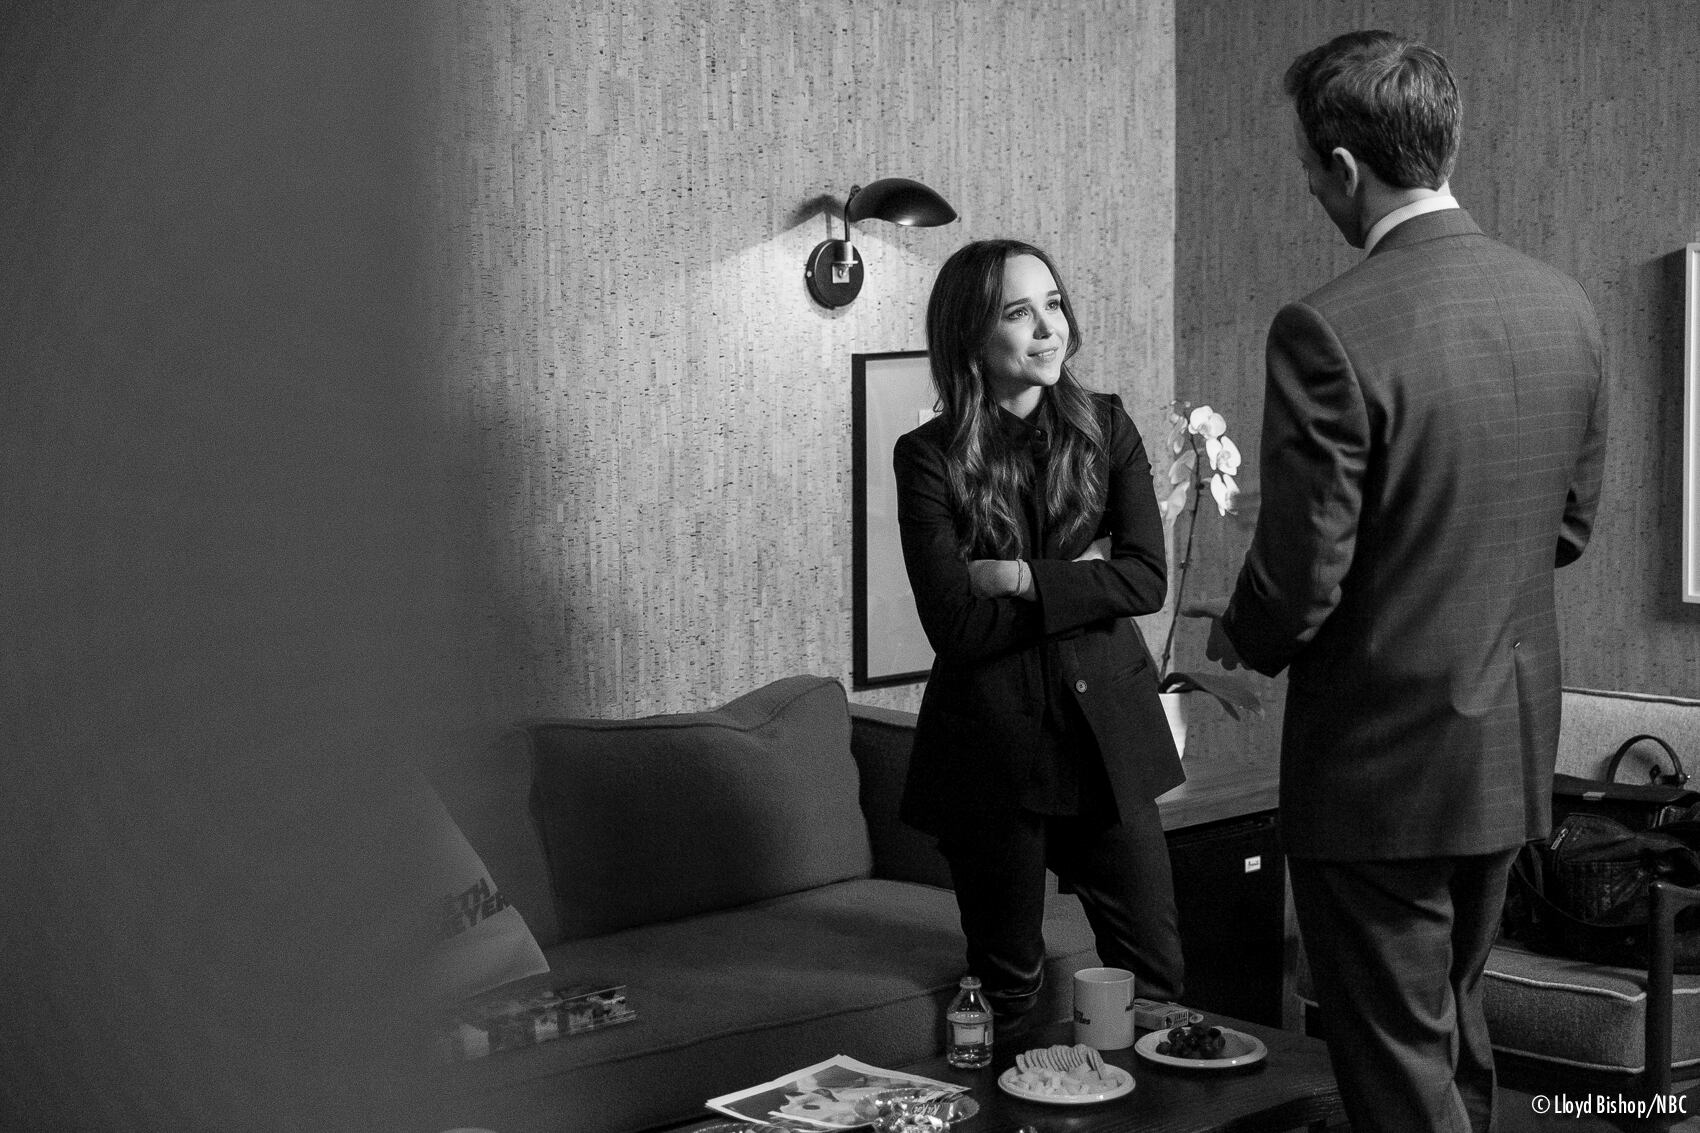 Ellen Page on Late Night with Seth Meyers